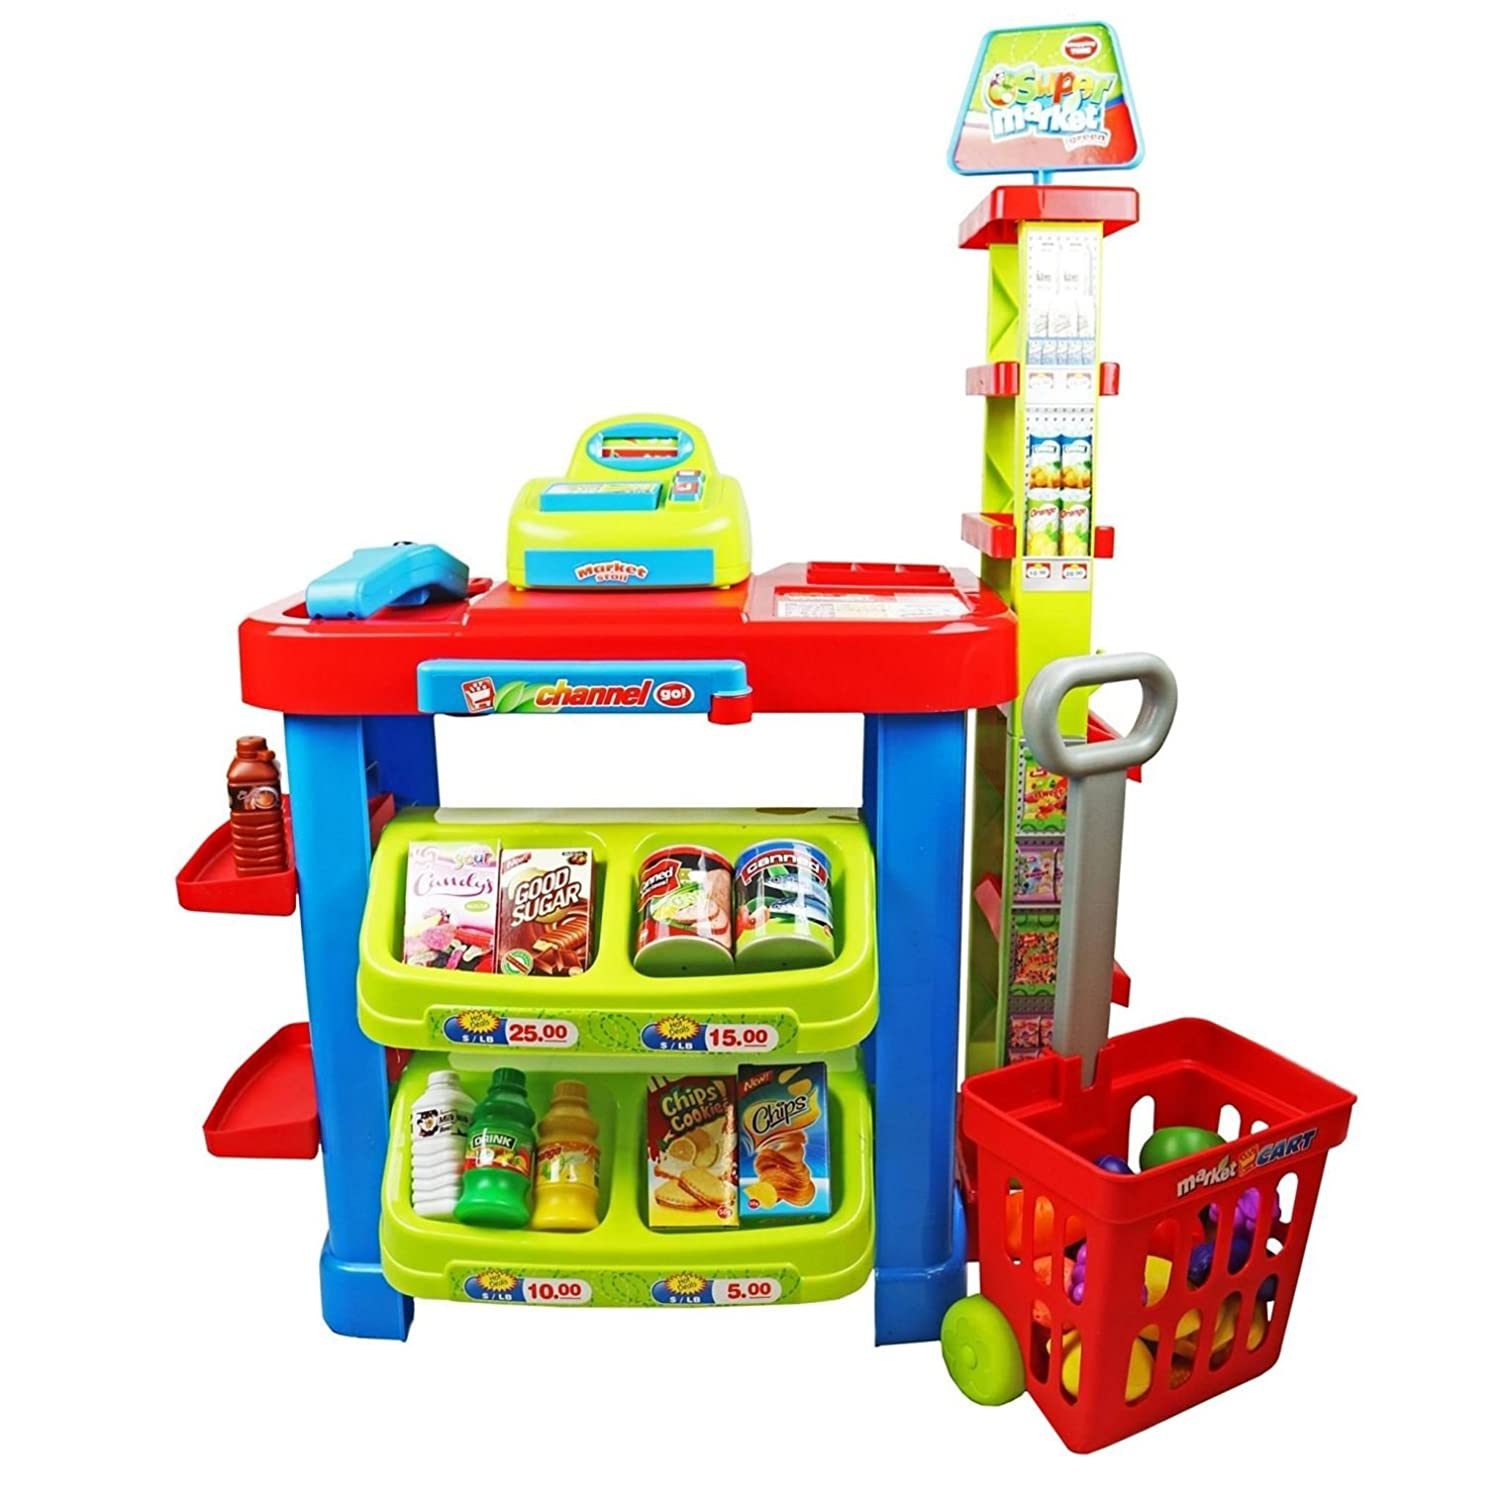 Kids Pretend Play Shopping Toy Grocery Can Food Basket Kitchen Store Accessory